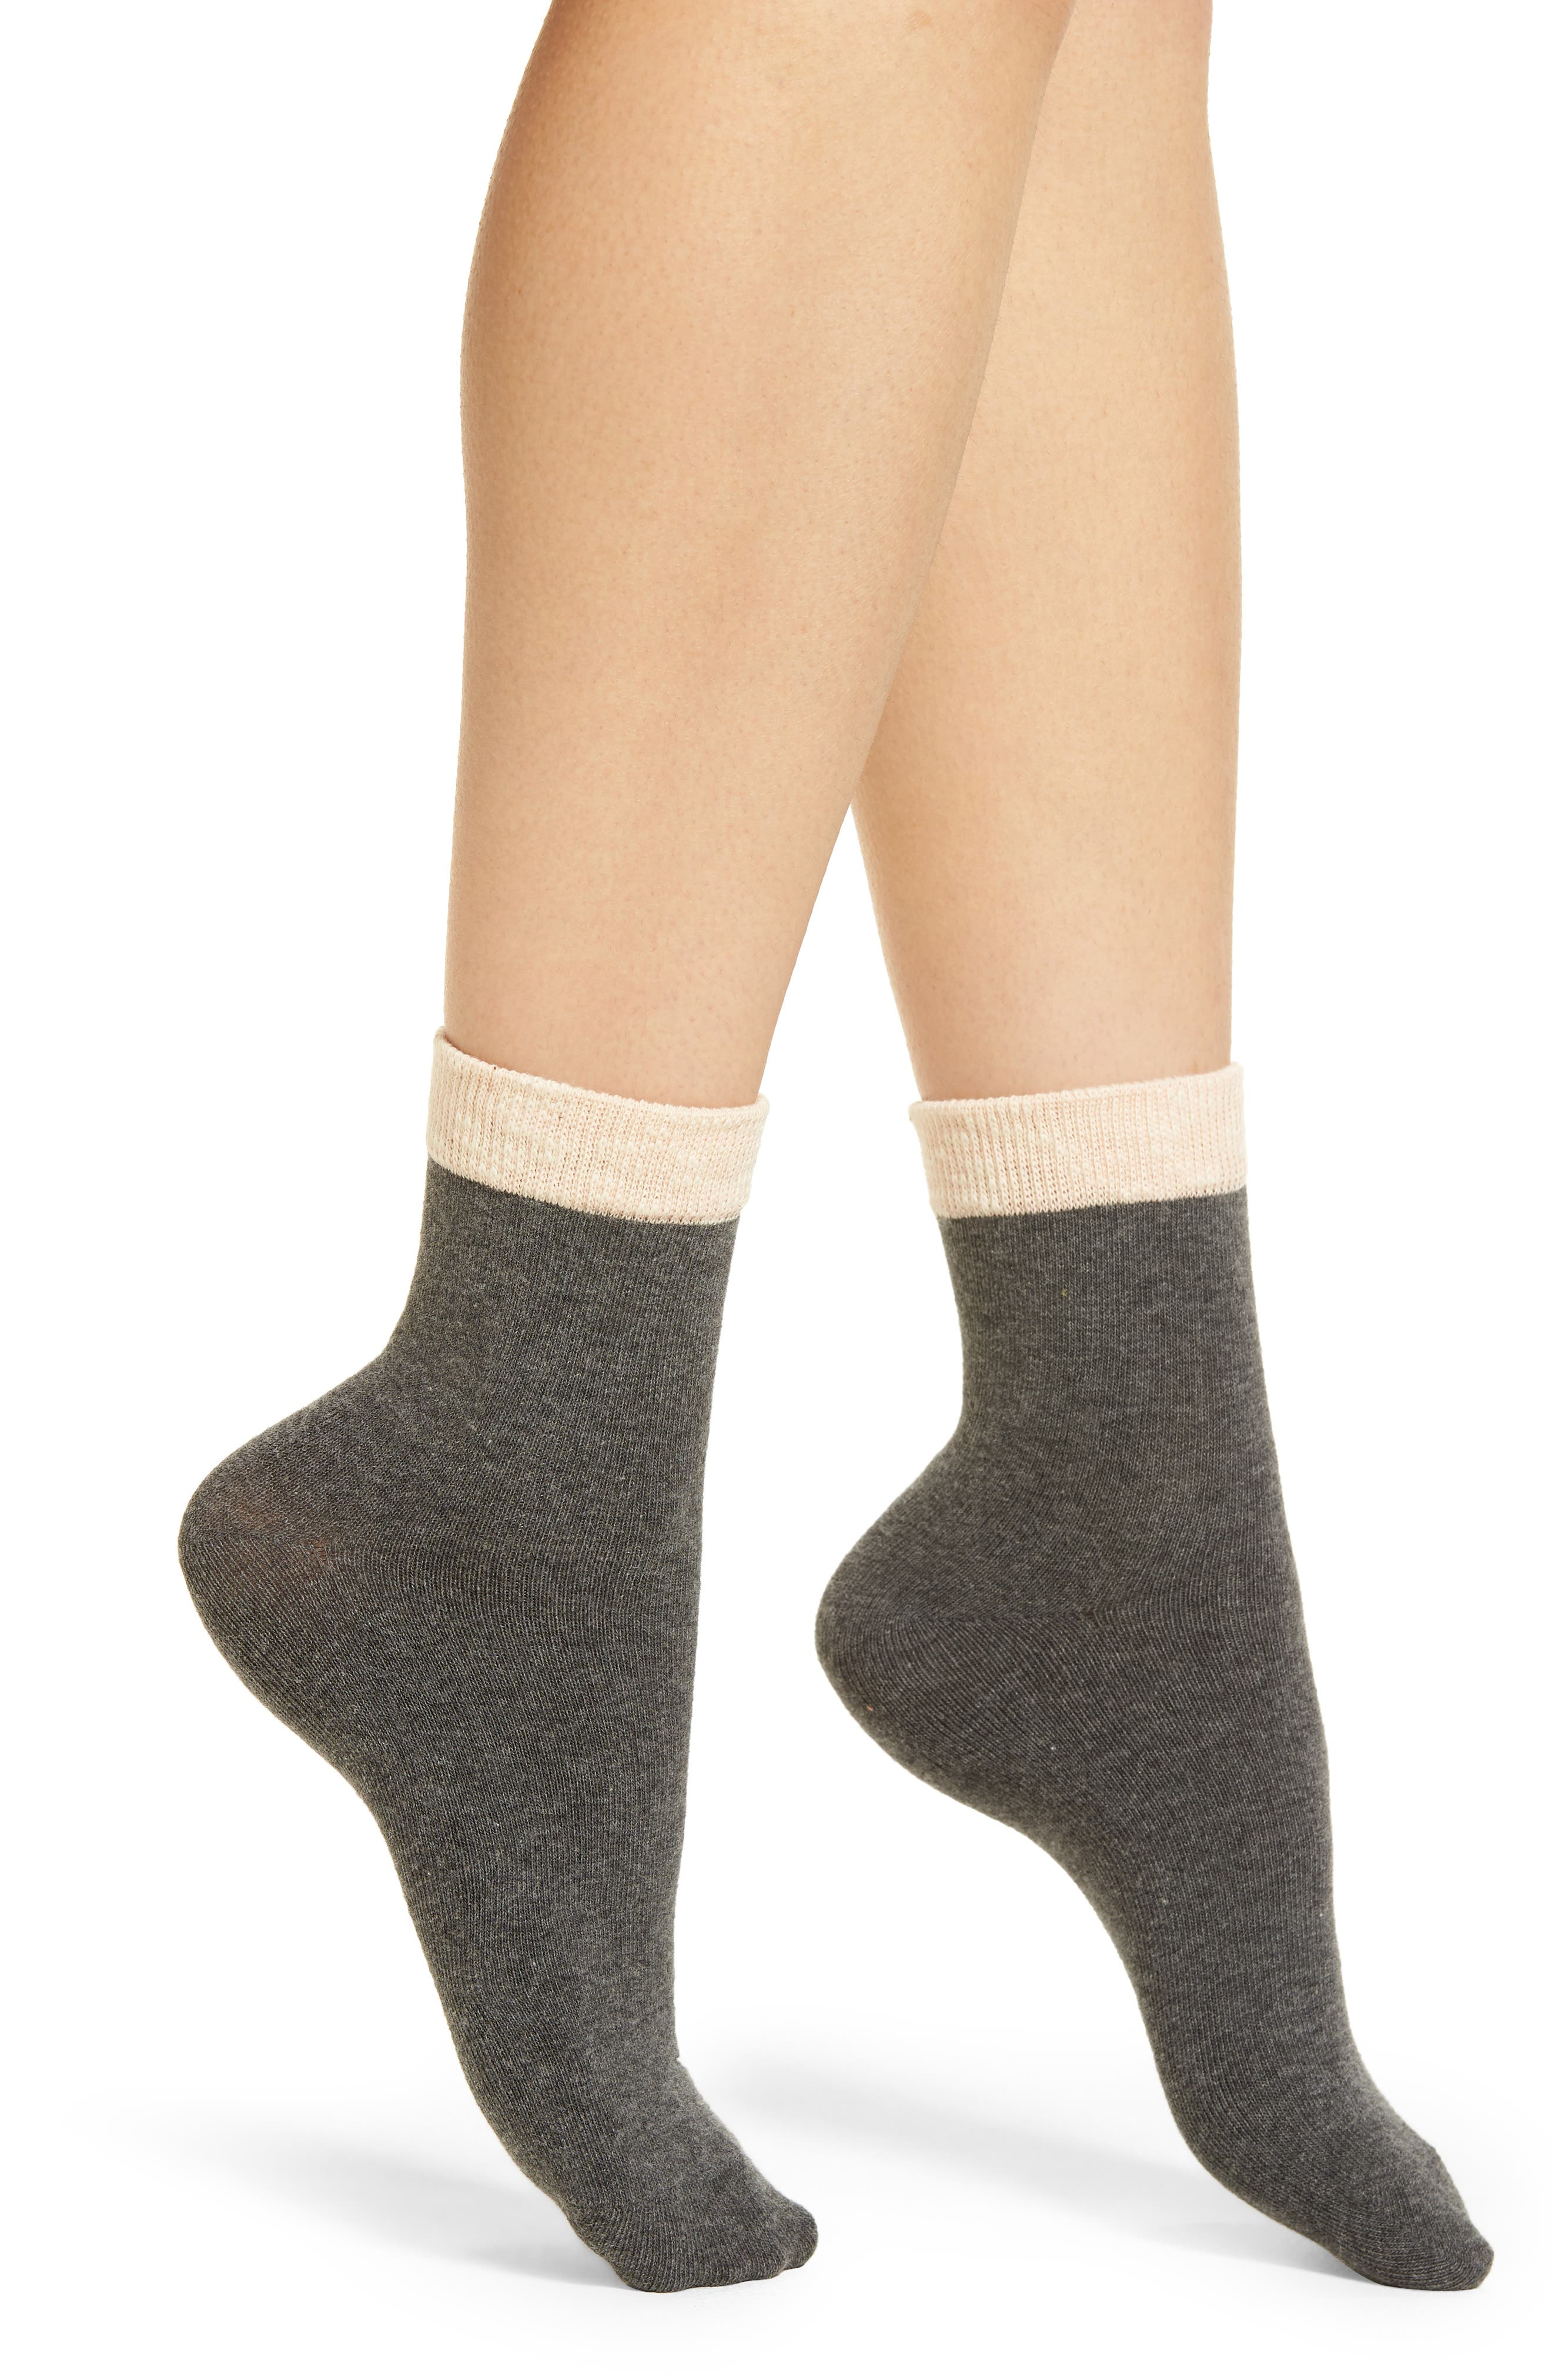 Ivy Ankle Socks,                             Main thumbnail 1, color,                             Charcoal